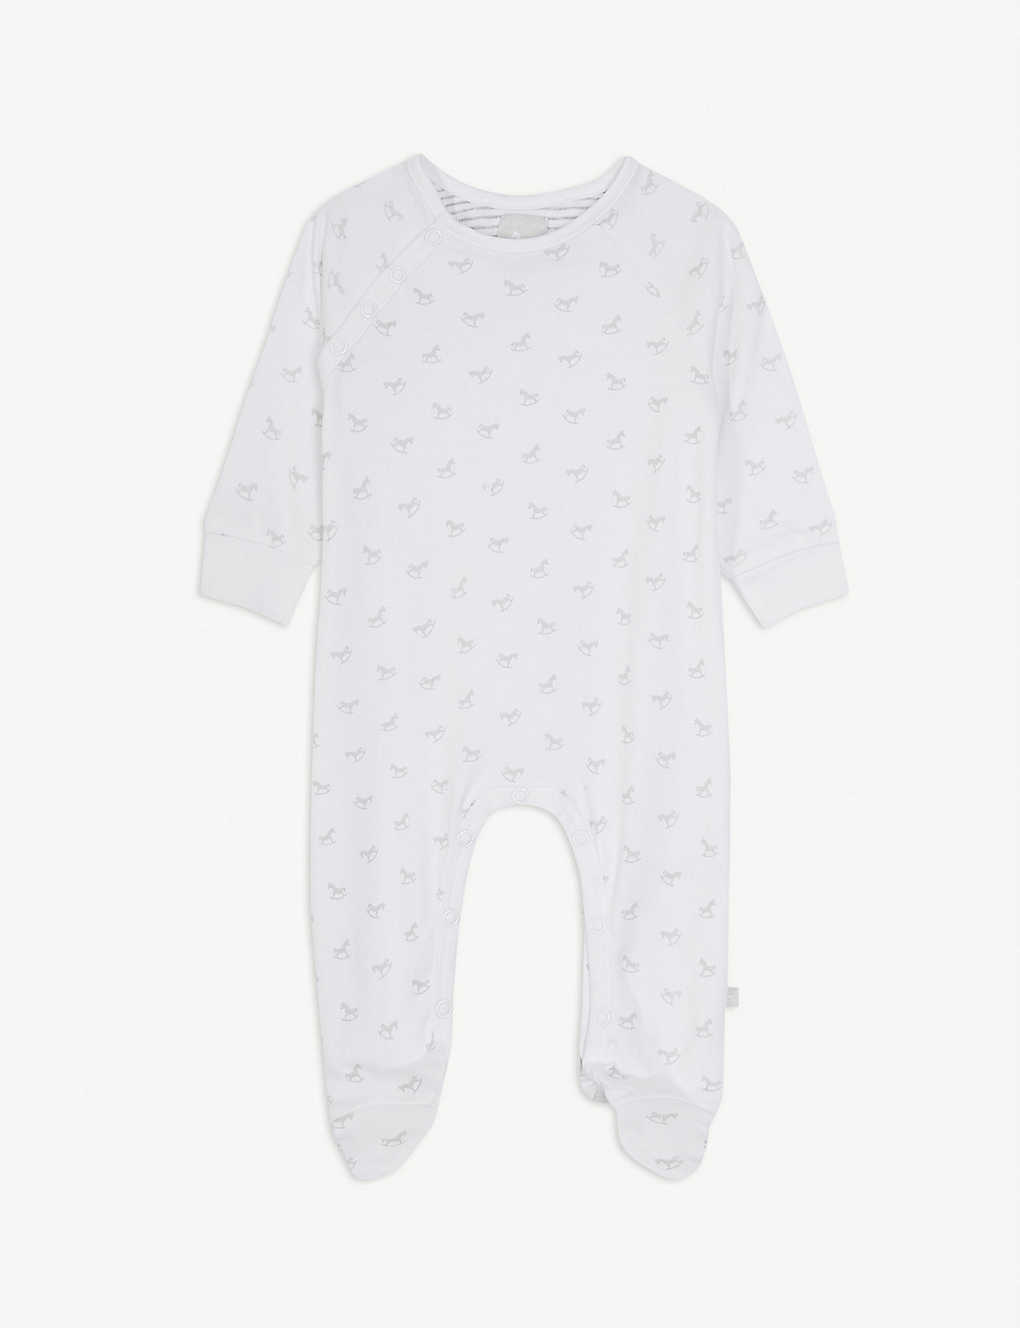 THE LITTLE TAILOR: Rocking horse cotton sleepsuit 0-18 months